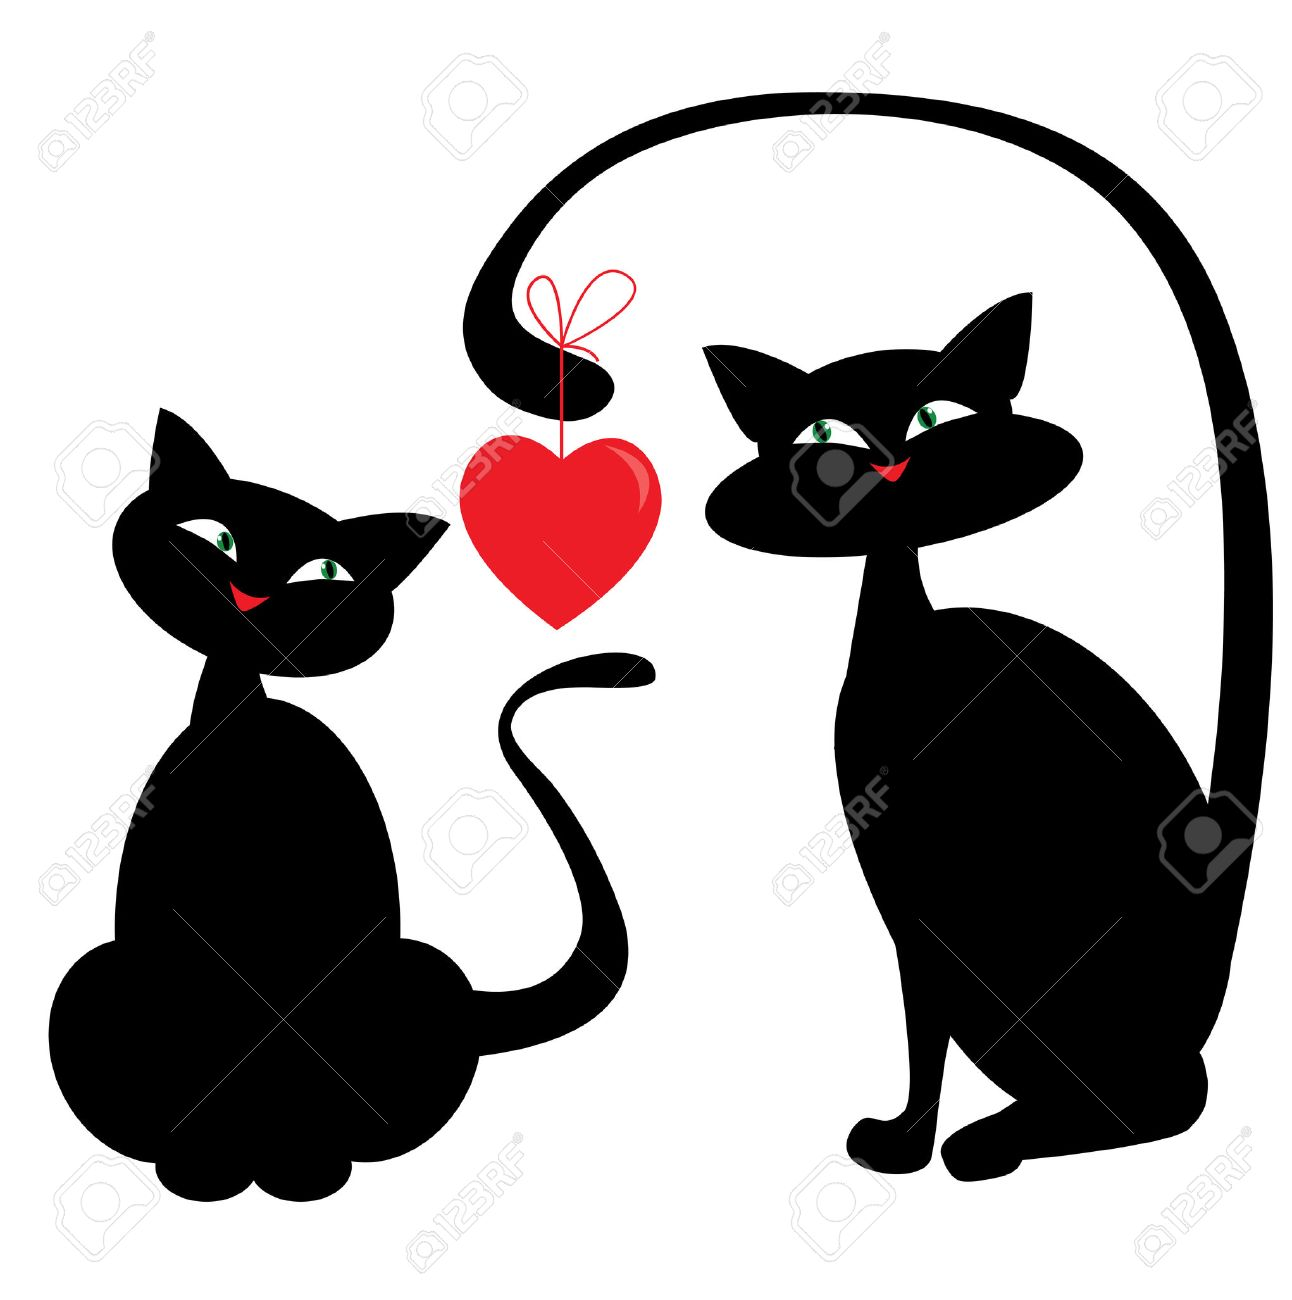 1292x1300 Cat Silhouette Stock Photos. Royalty Free Cat Silhouette Images